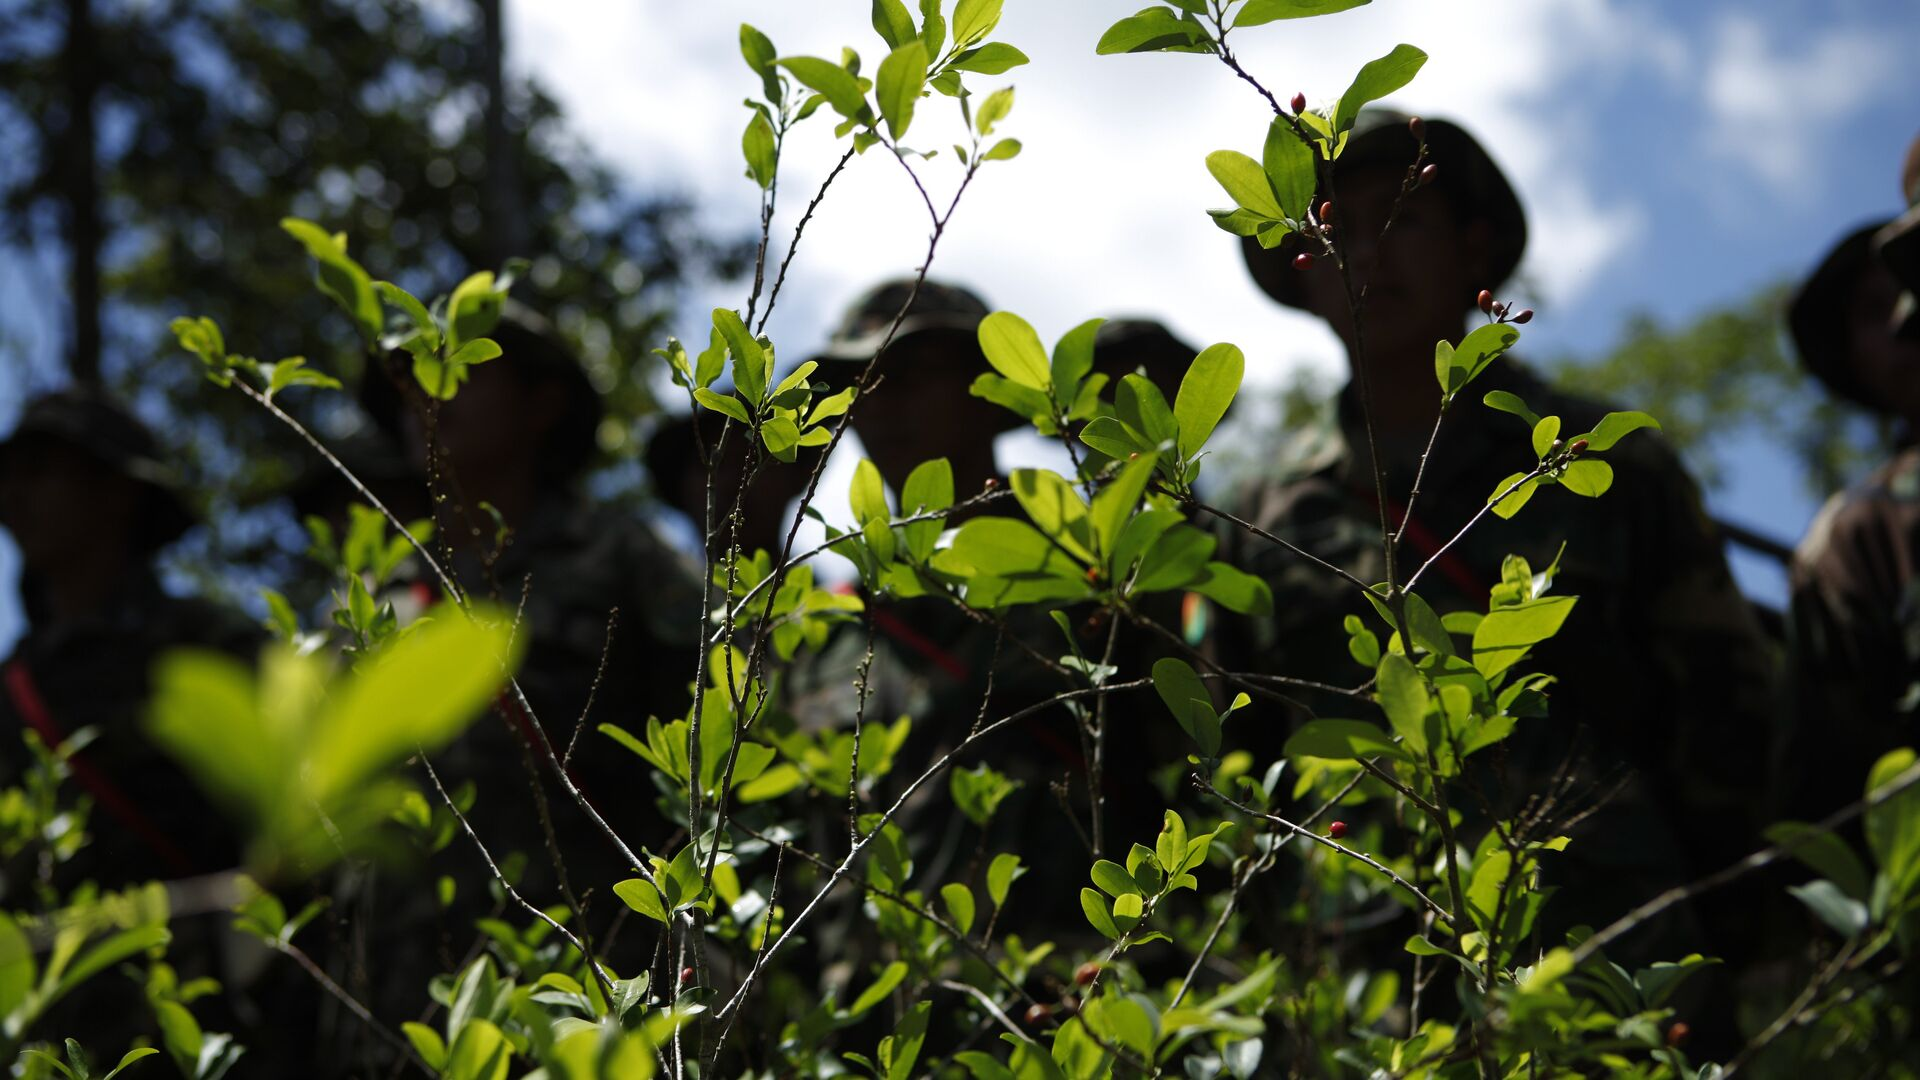 Soldiers stand next to illegally grown coca plants before uprooting them in Paraiso, Bolivia, Monday, Jan. 16, 2012. - Sputnik Mundo, 1920, 20.04.2021